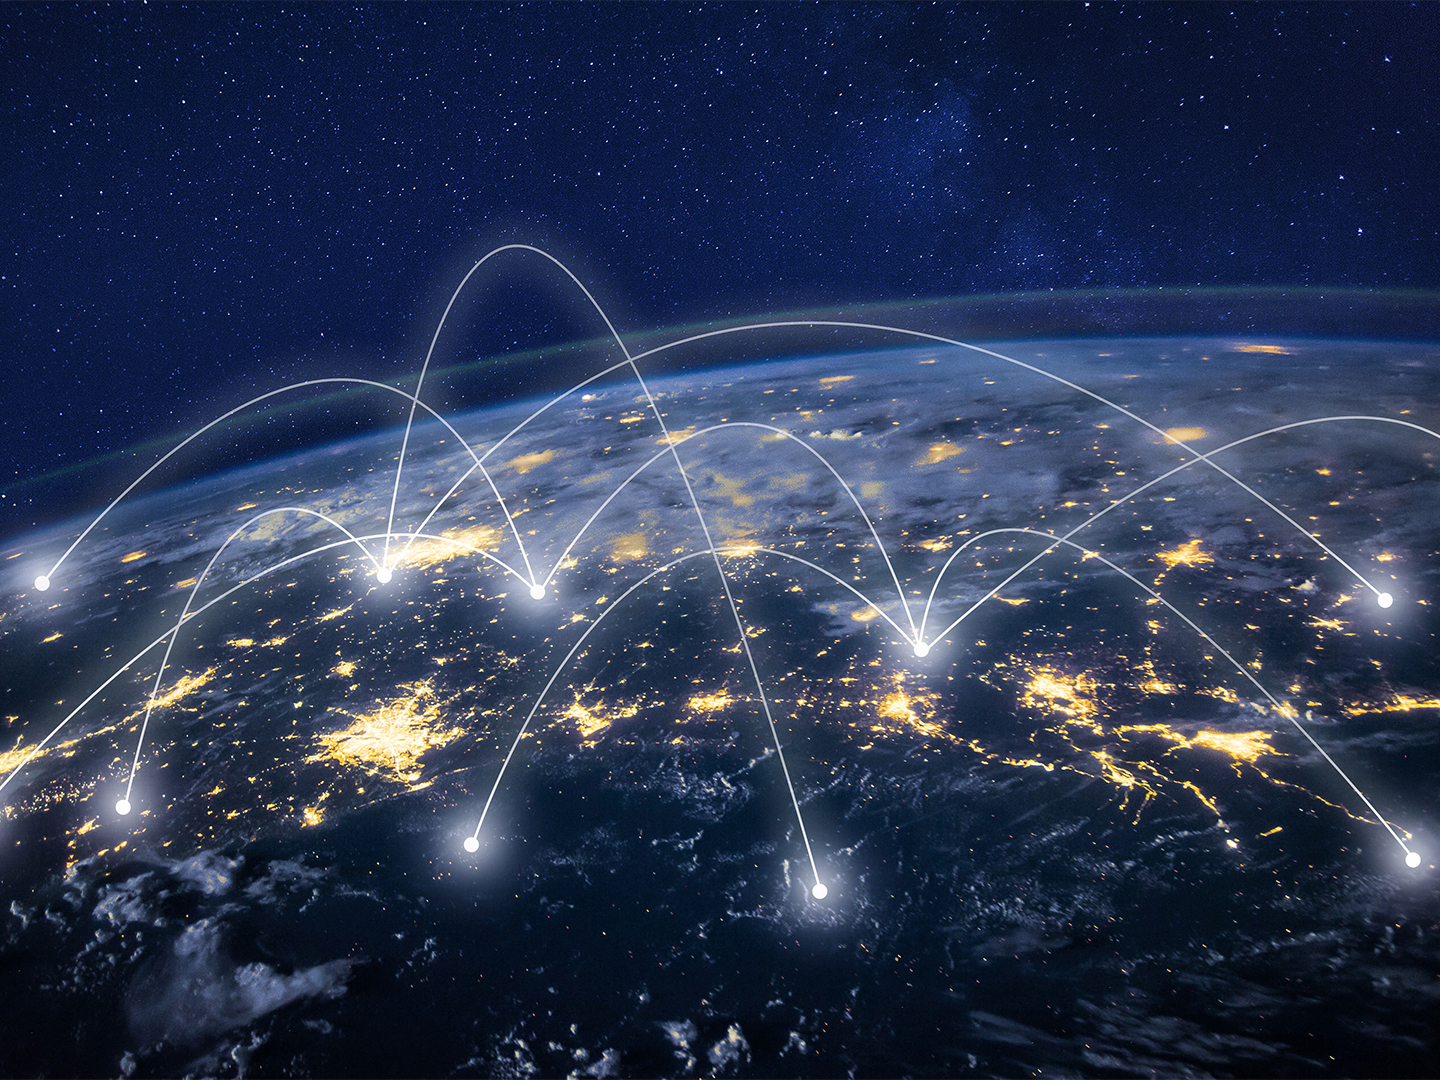 Network connecting across the globe at night